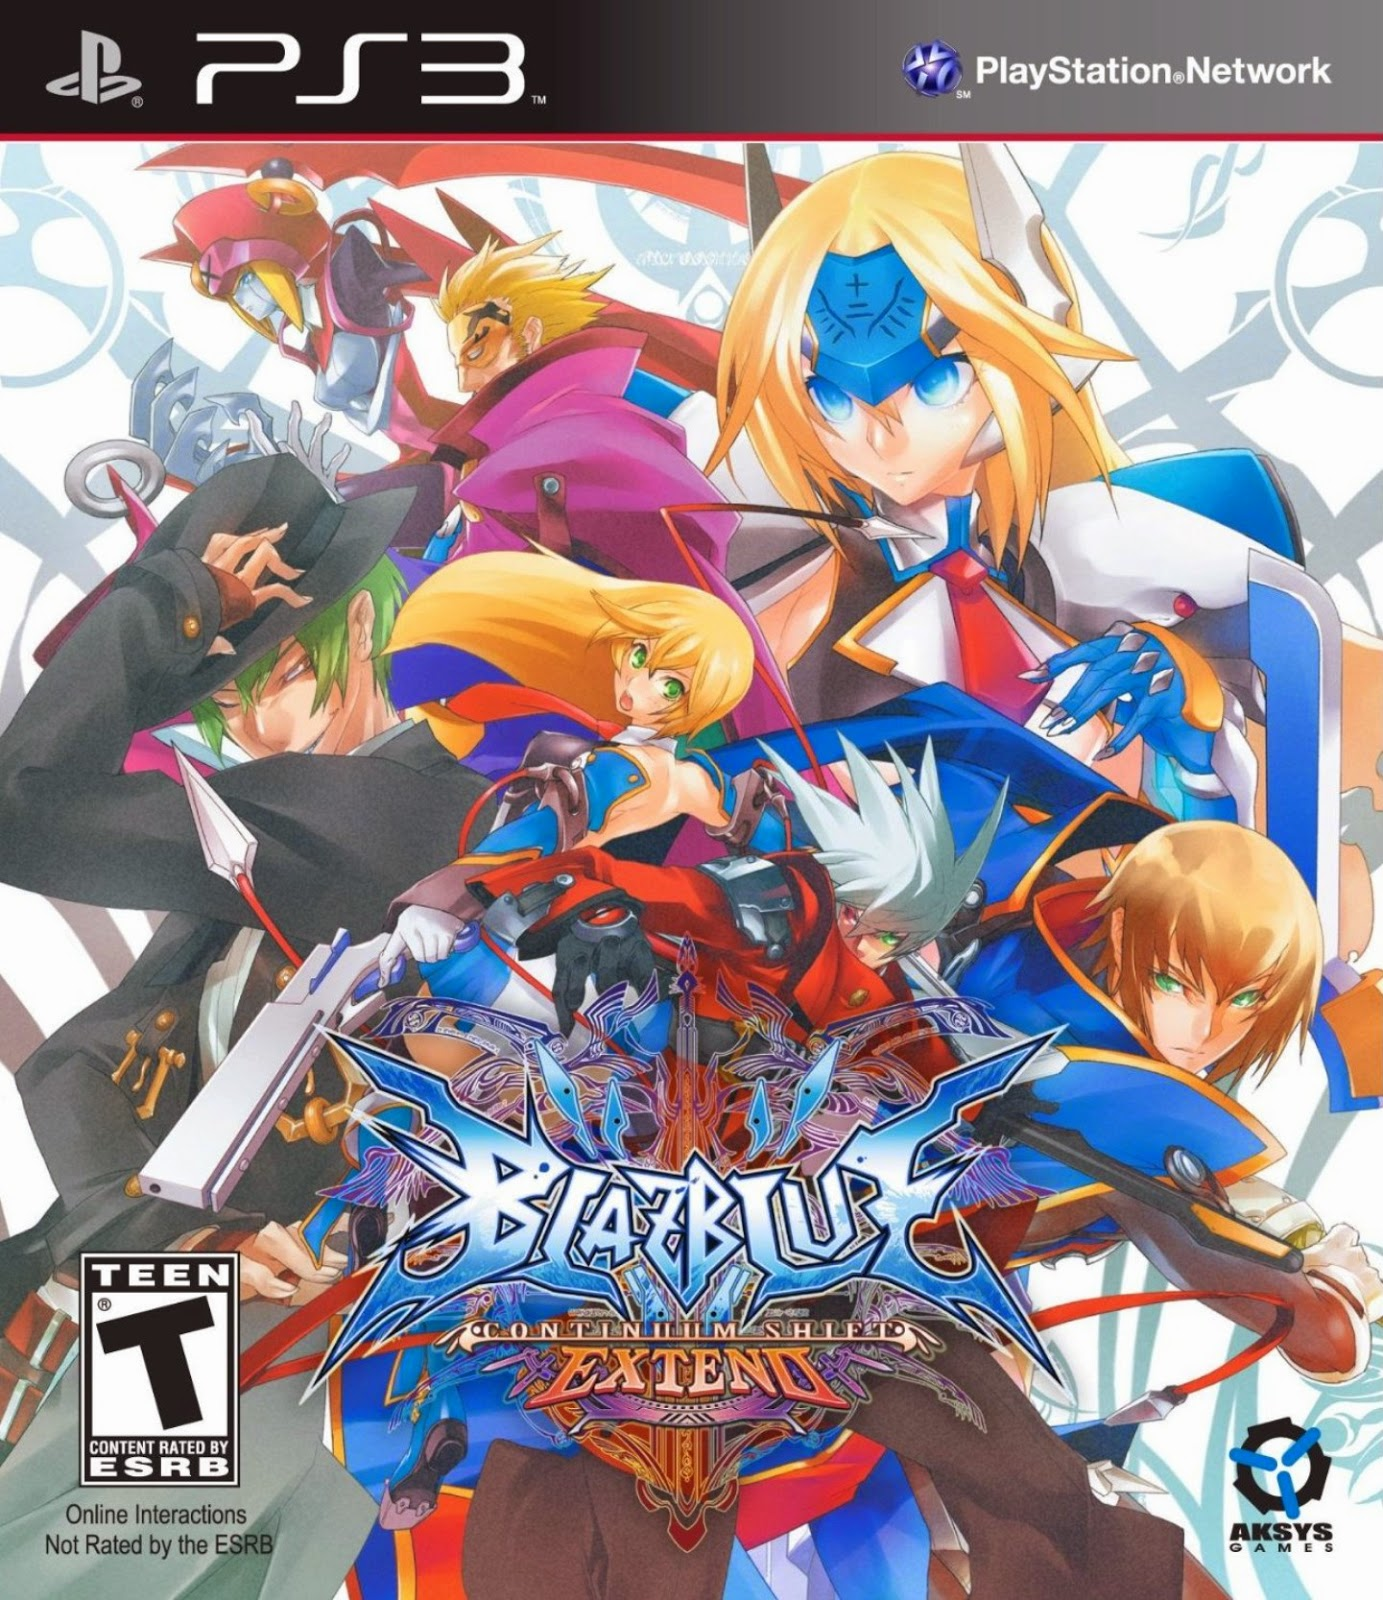 BlazBlue Continuum Shift EXTEND PS3